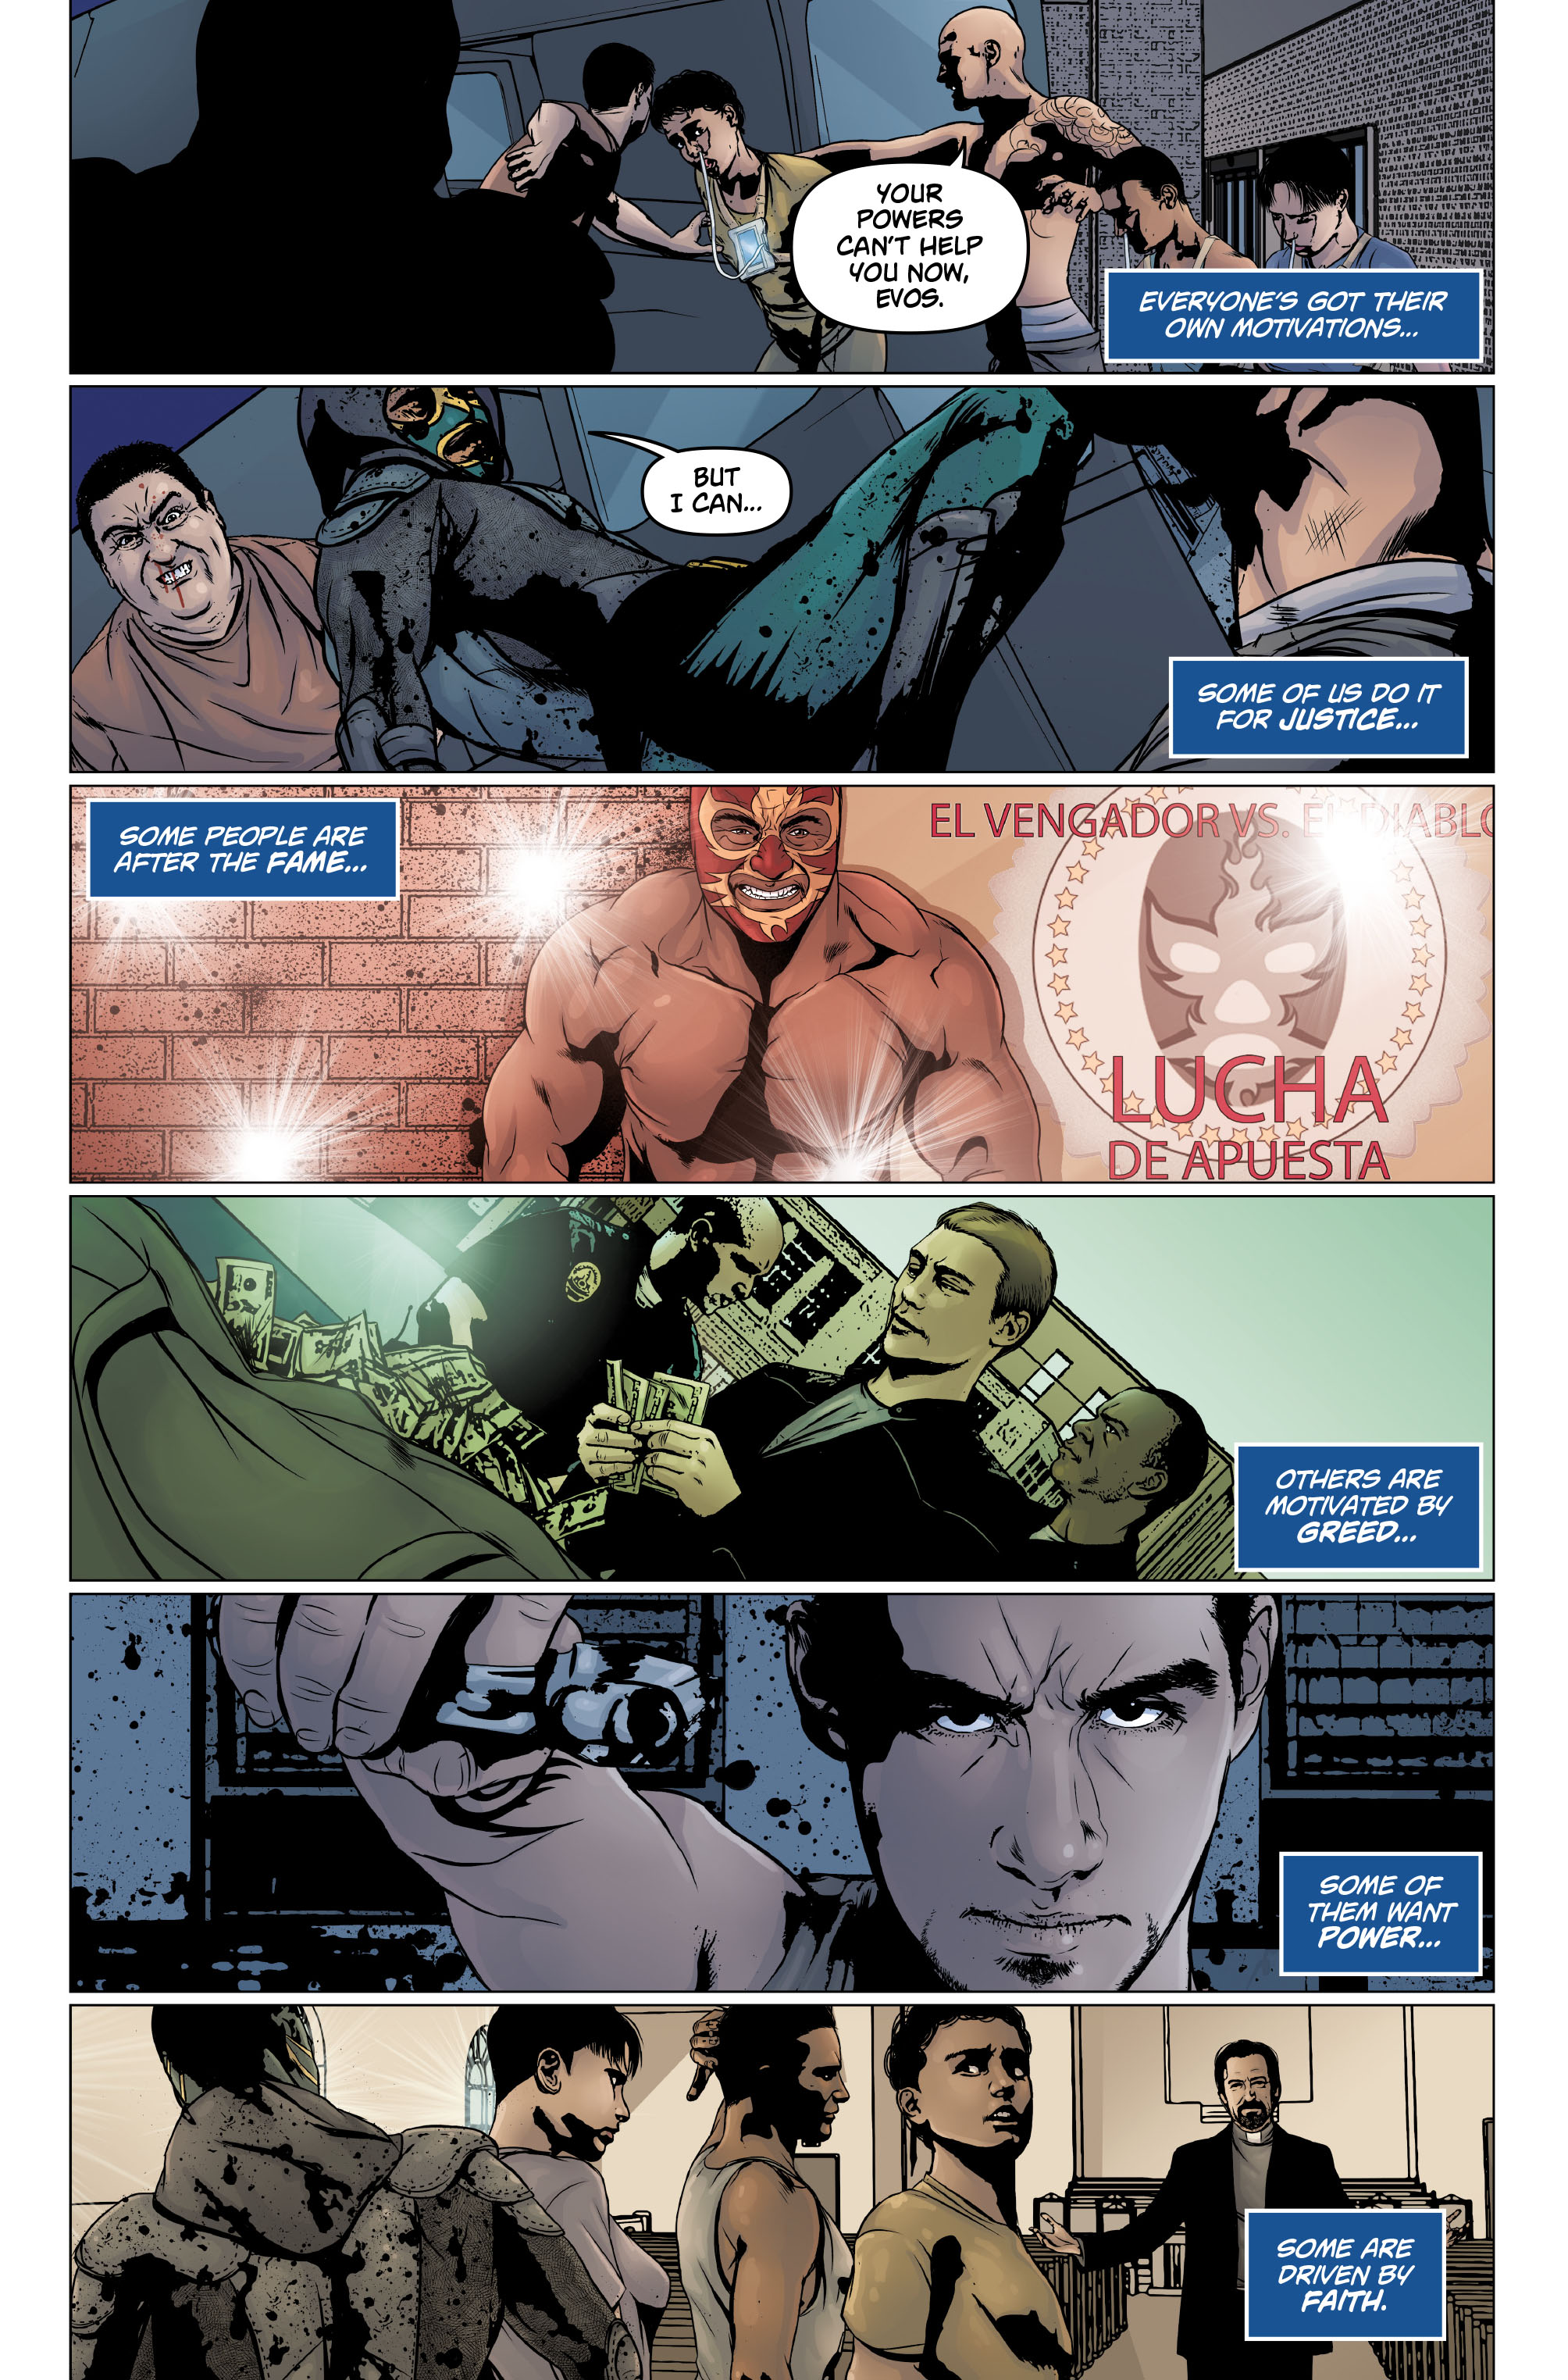 Heroes Vengeance #4 Preview Page